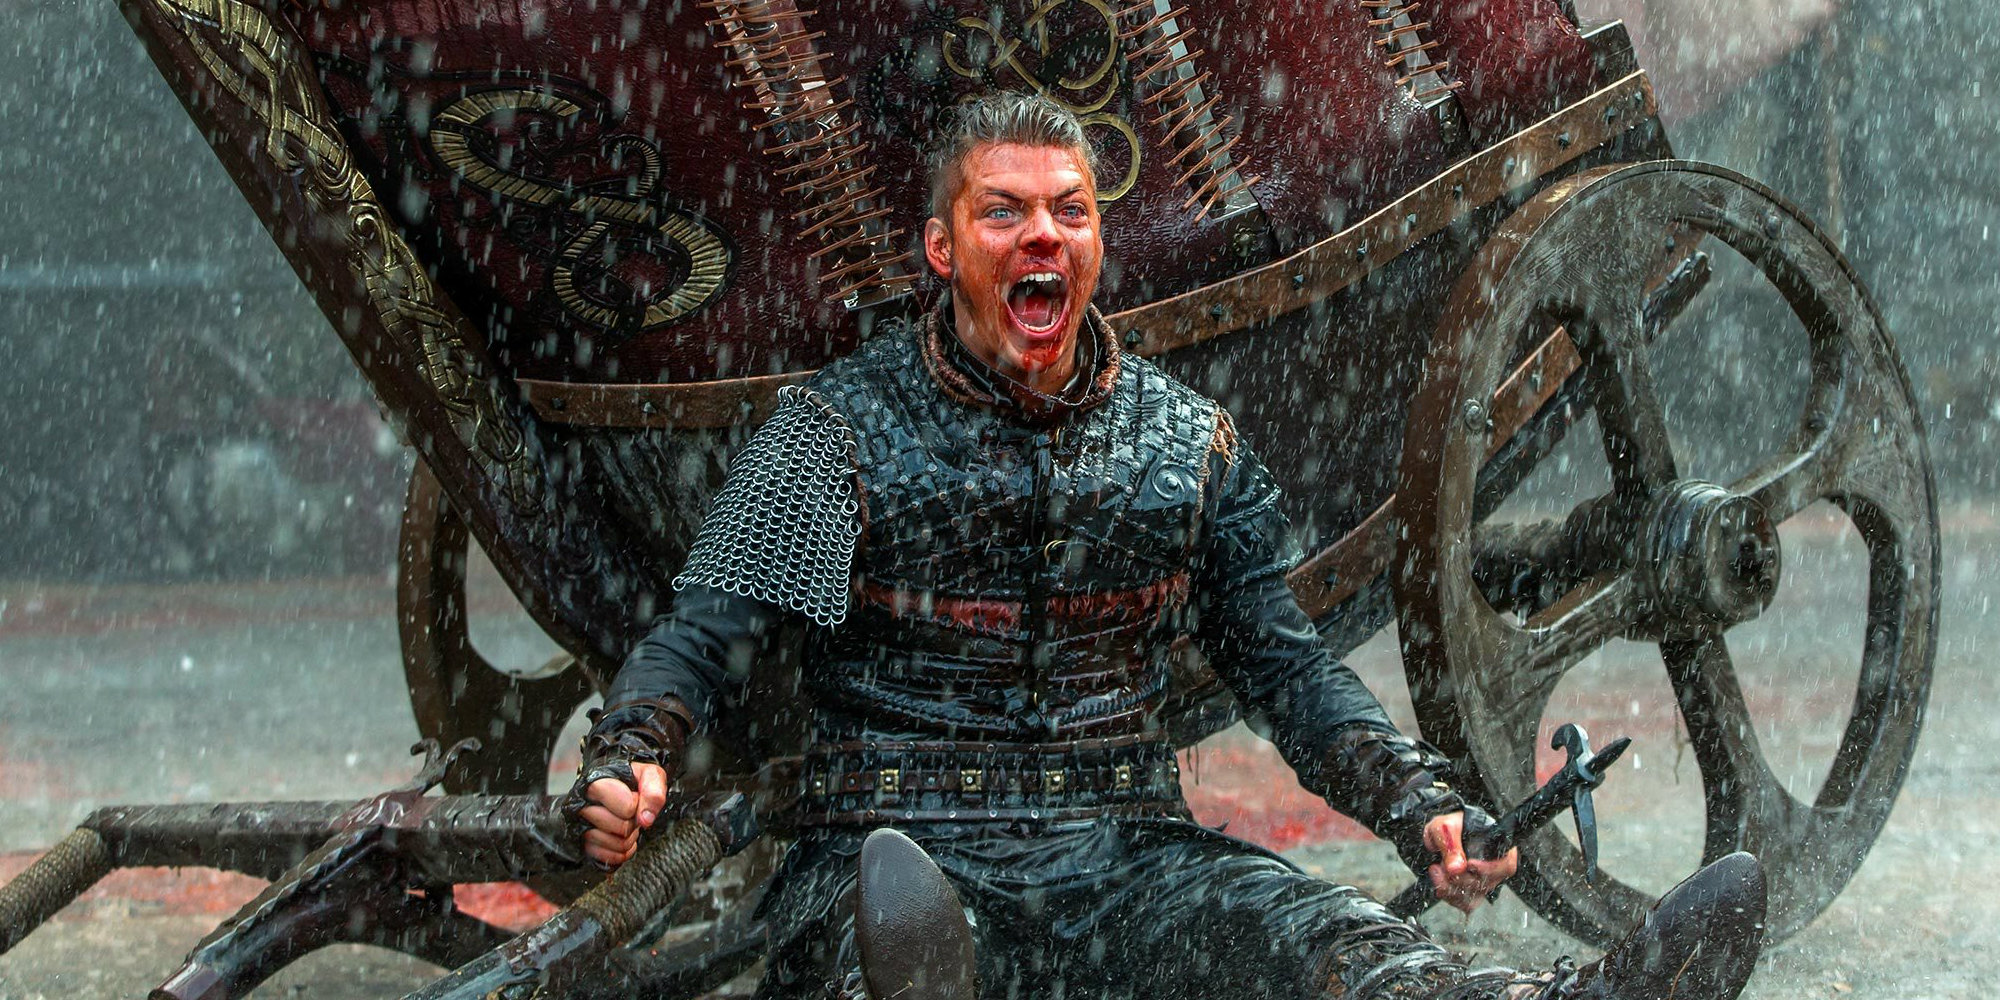 Alex Hogh Andersen in Vikings Season 5